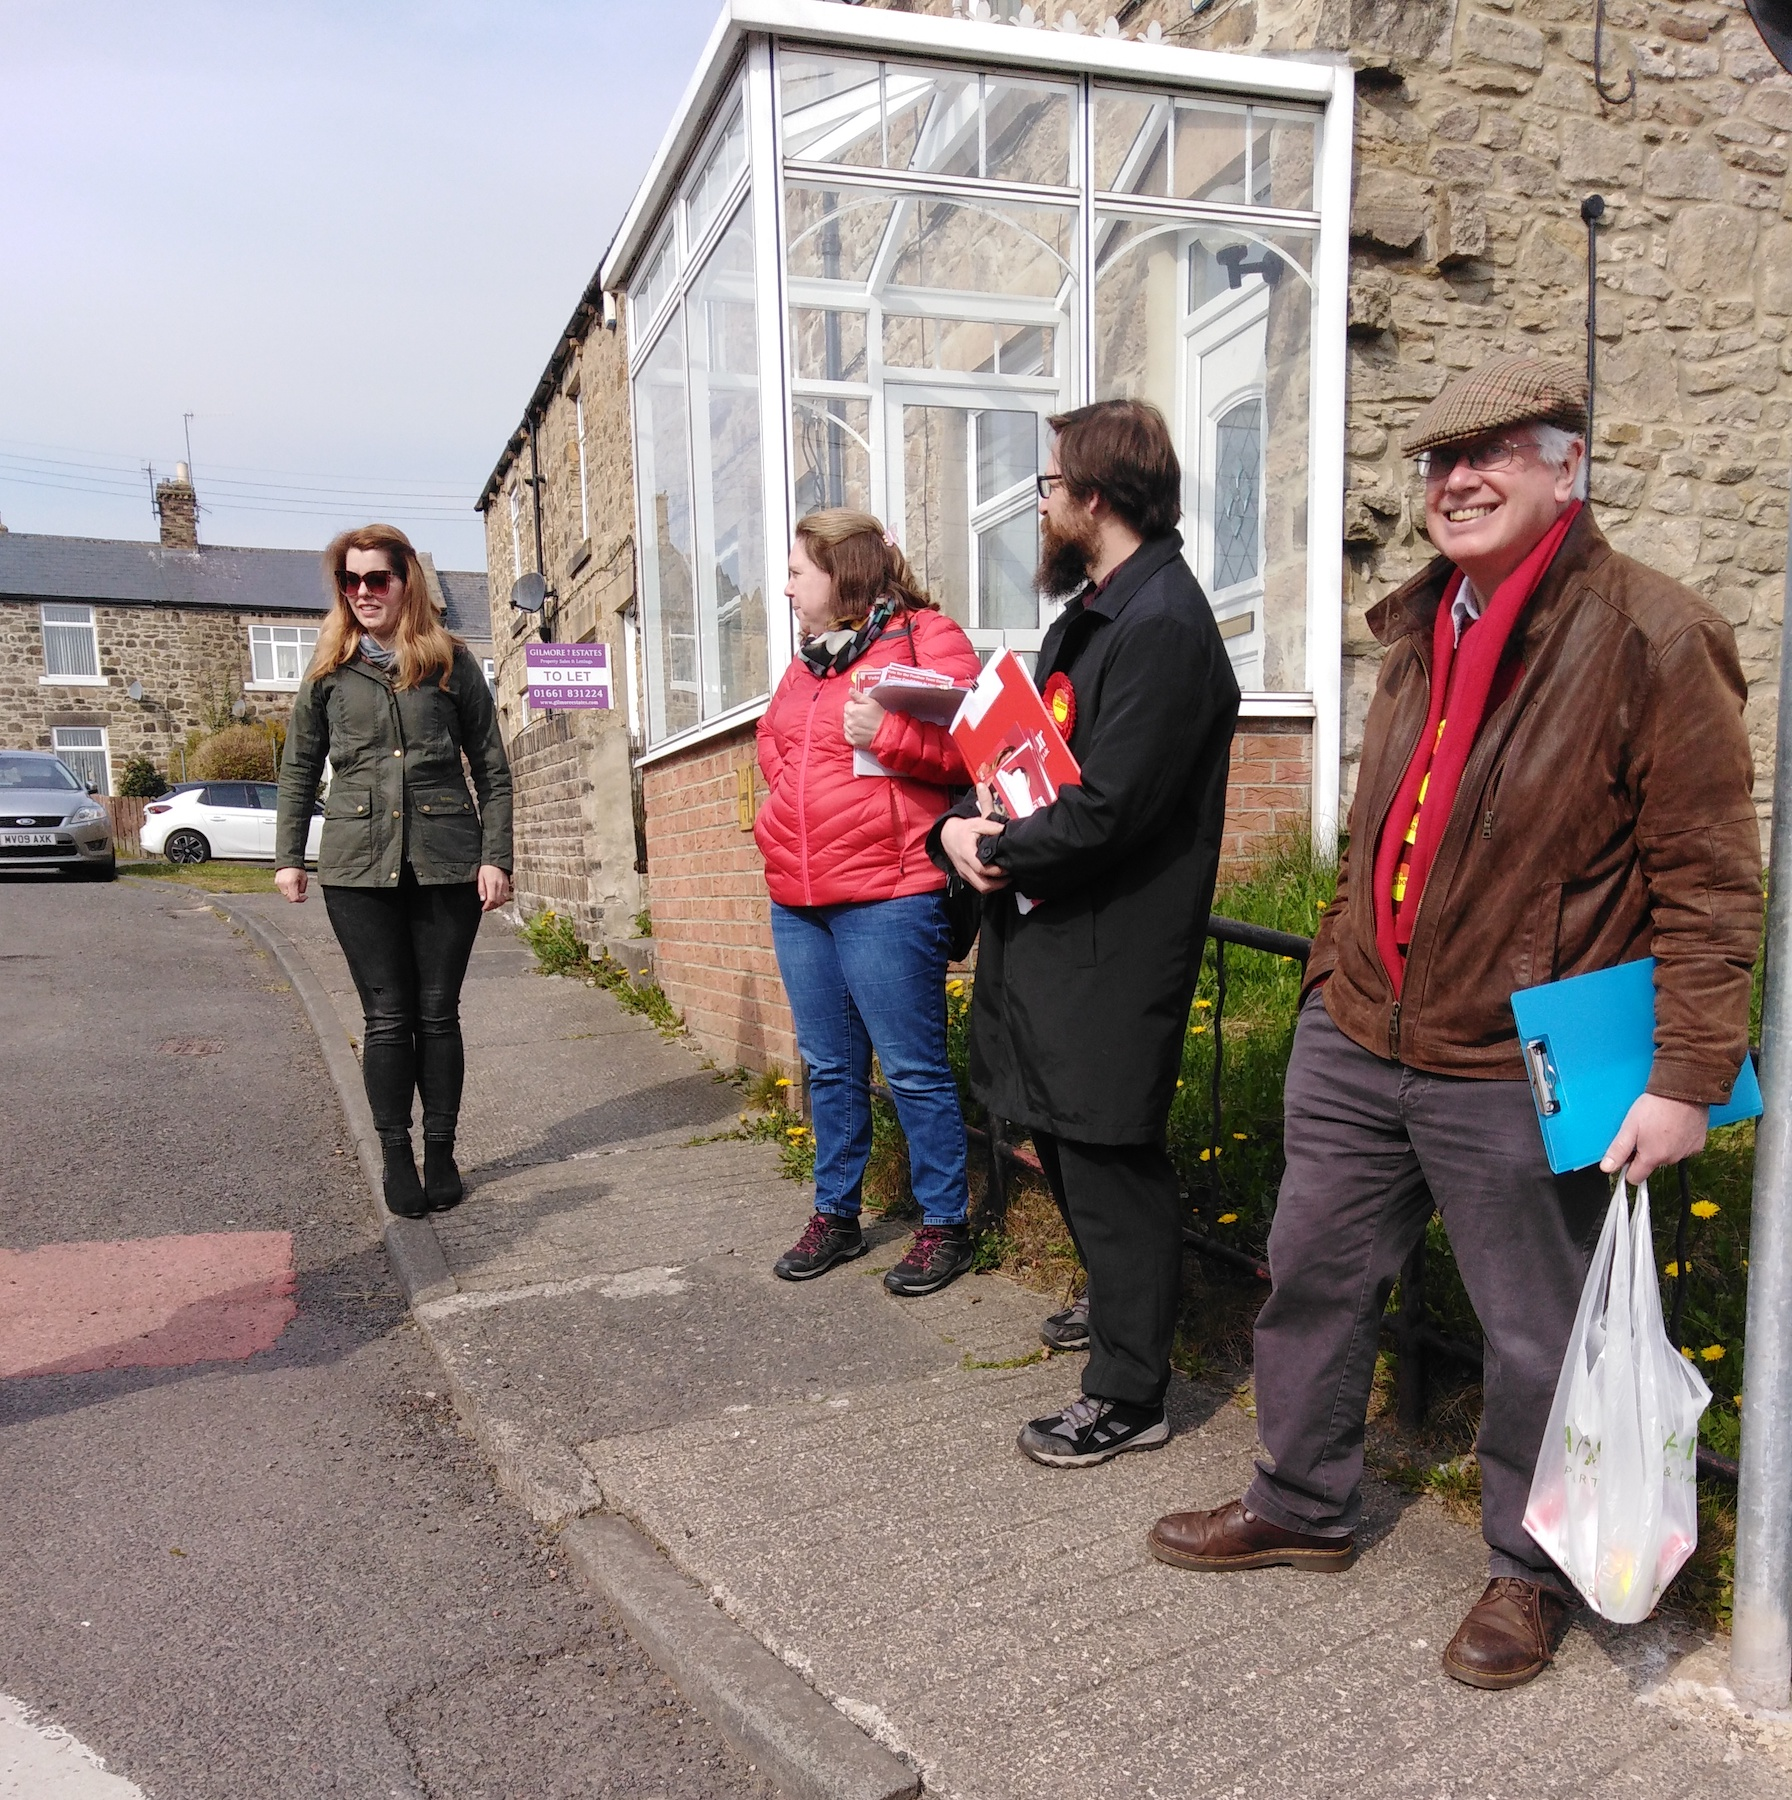 Prudhoe candidates campaigning for Kim